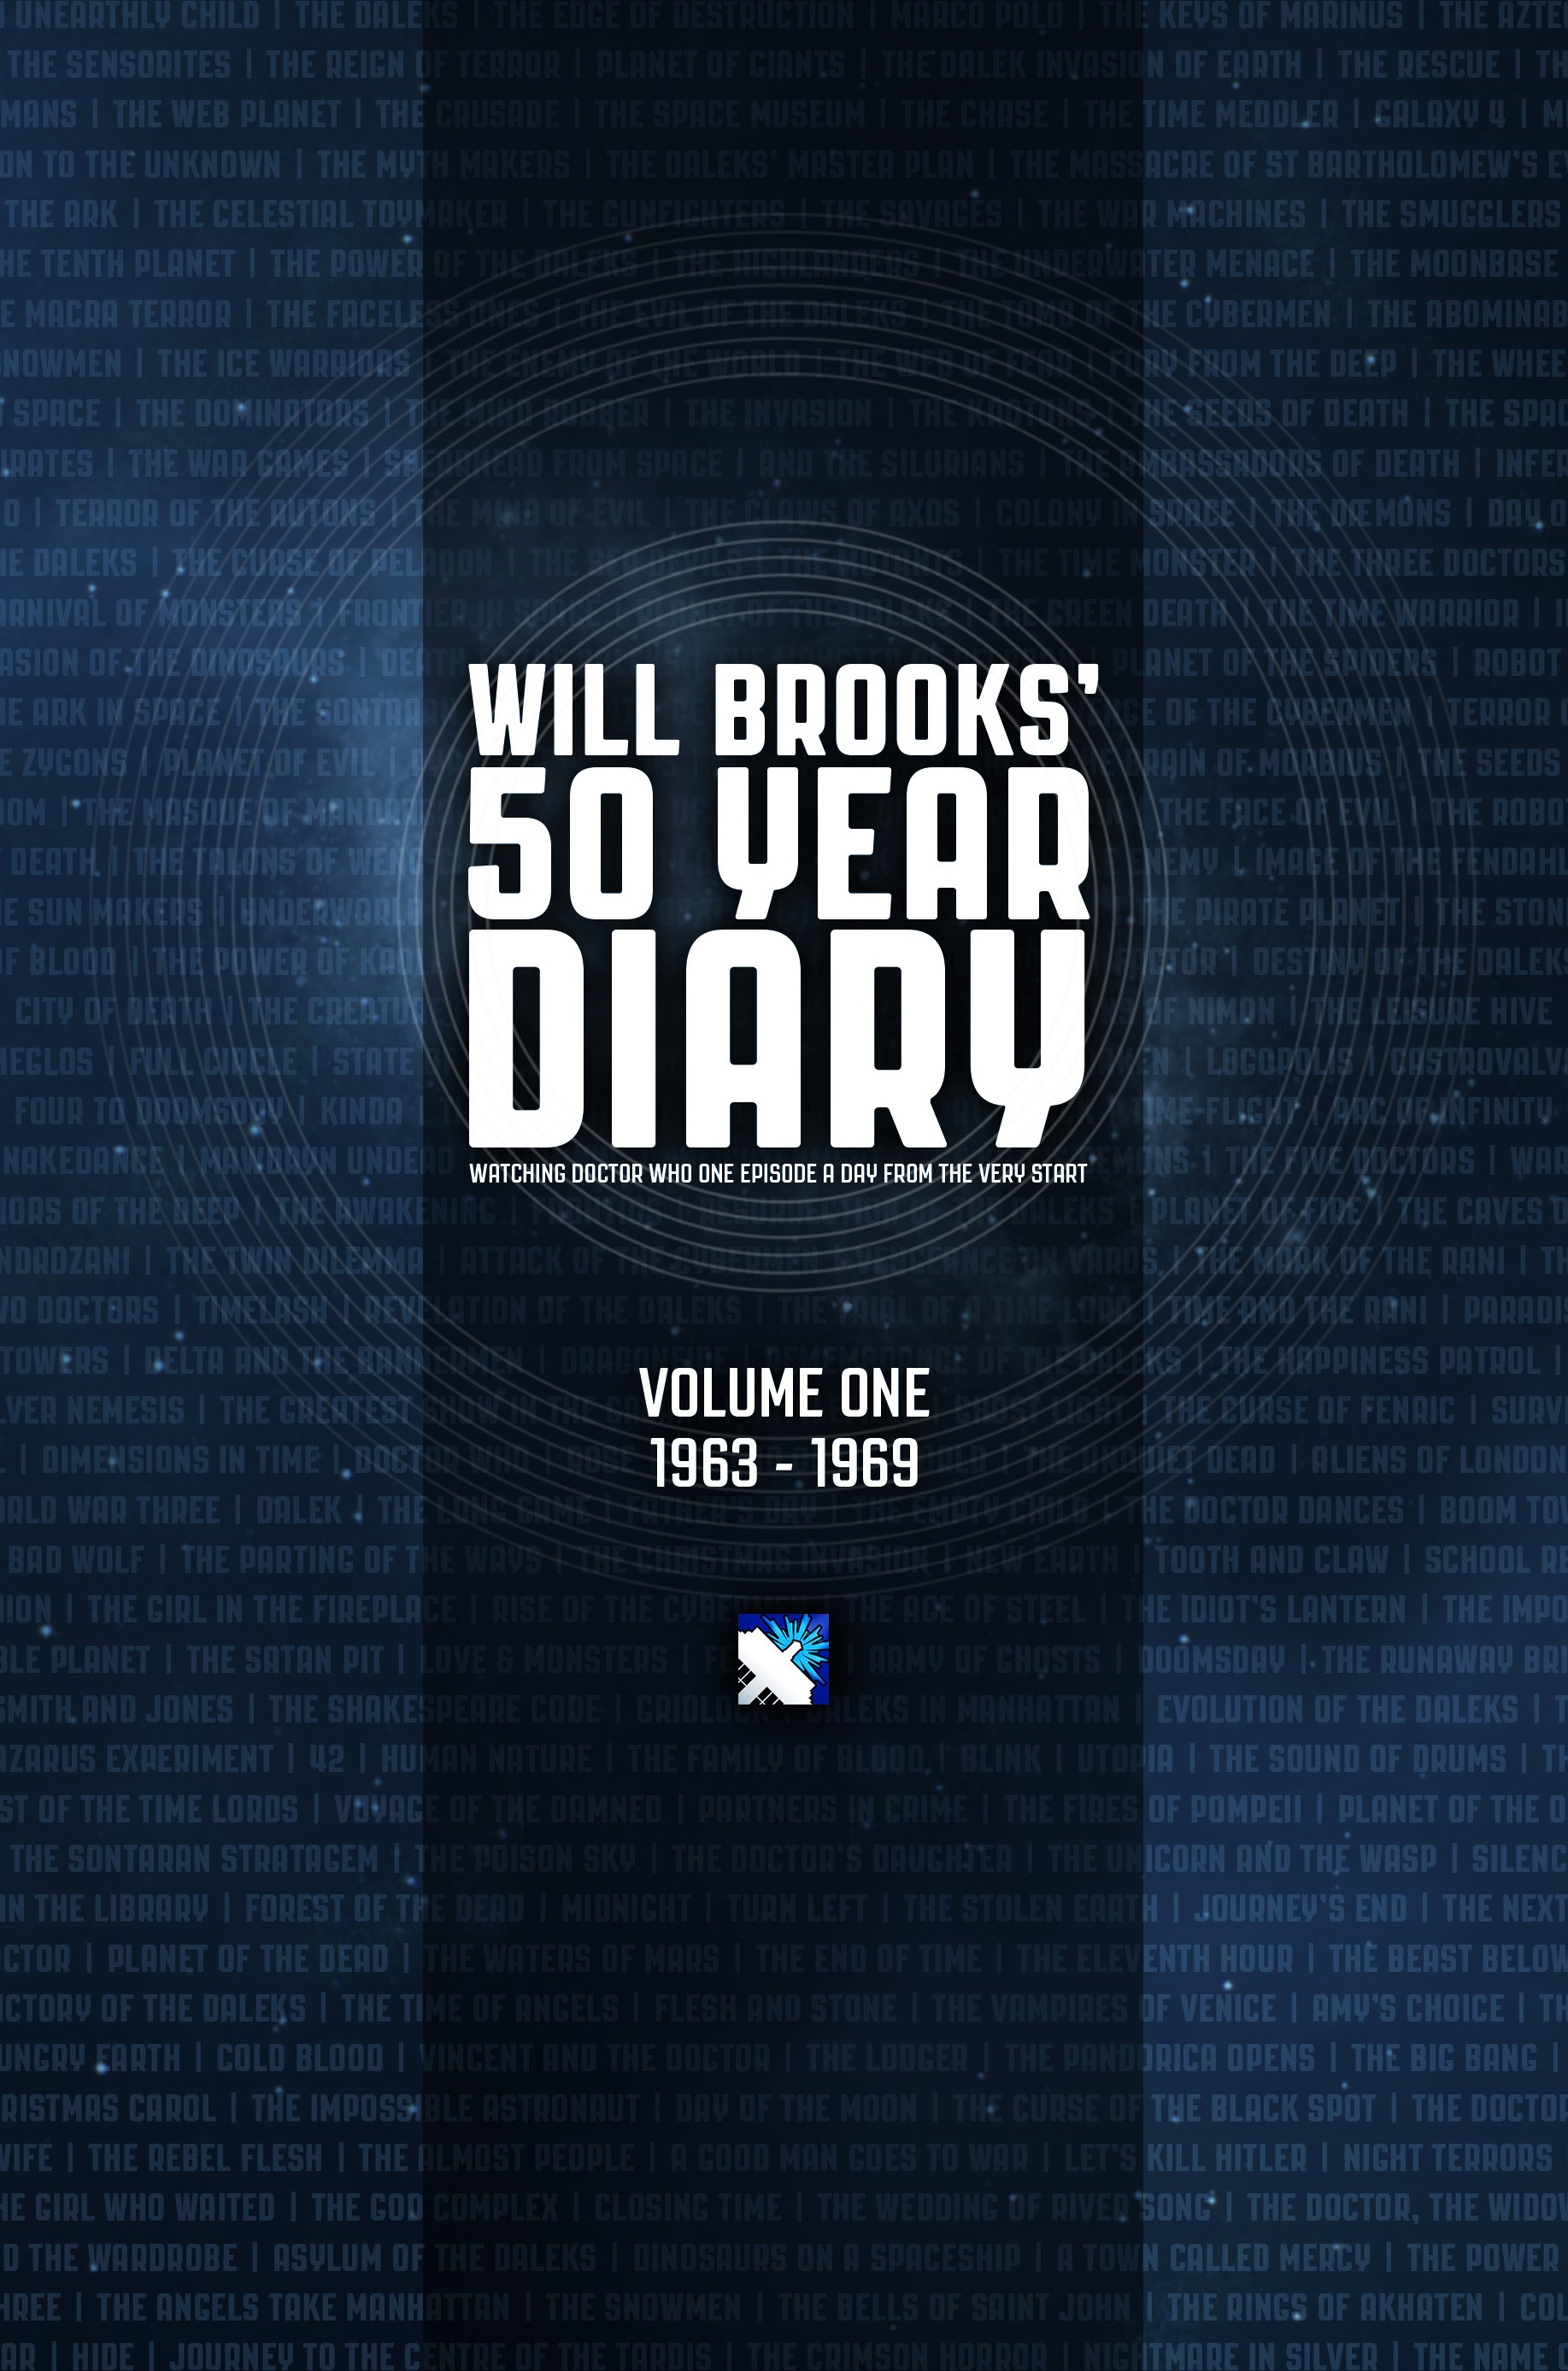 Will Brooks' 50 Year Diary - Volume One 1963-1969 (Credit: Pageturner Publishing)